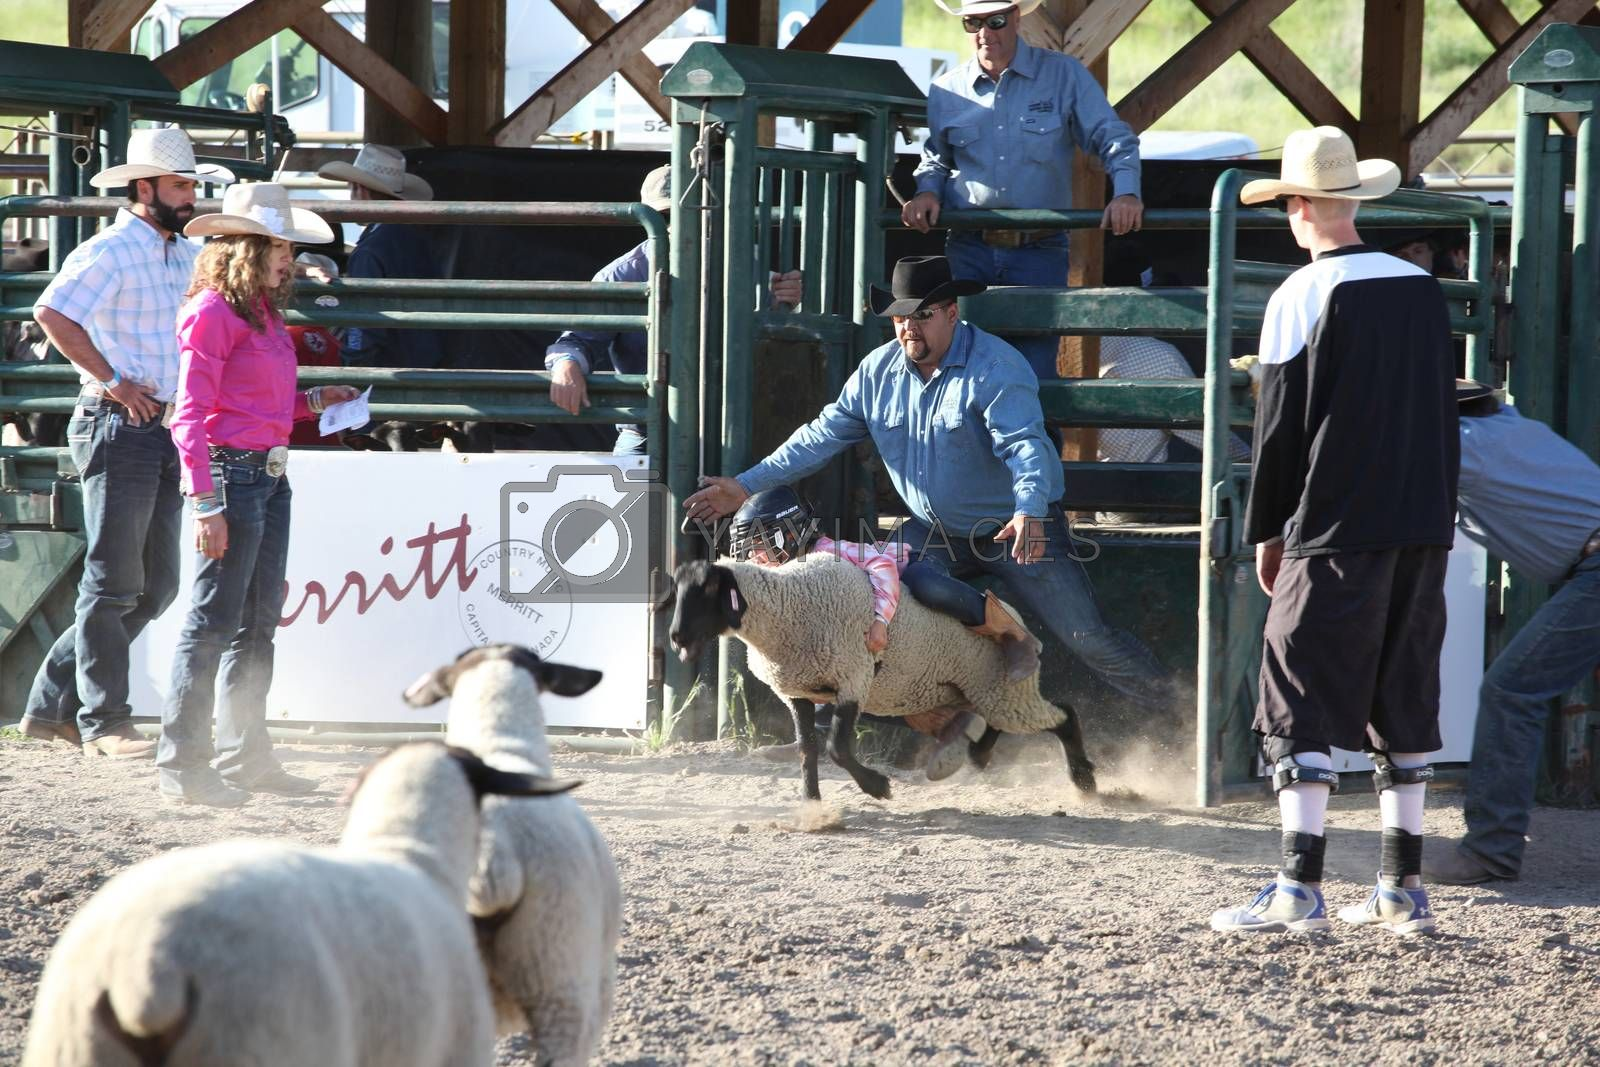 MERRITT, B.C. CANADA - May 30, 2015: Mutton Busting at the The 3rd Annual Ty Pozzobon Invitational PBR Event.